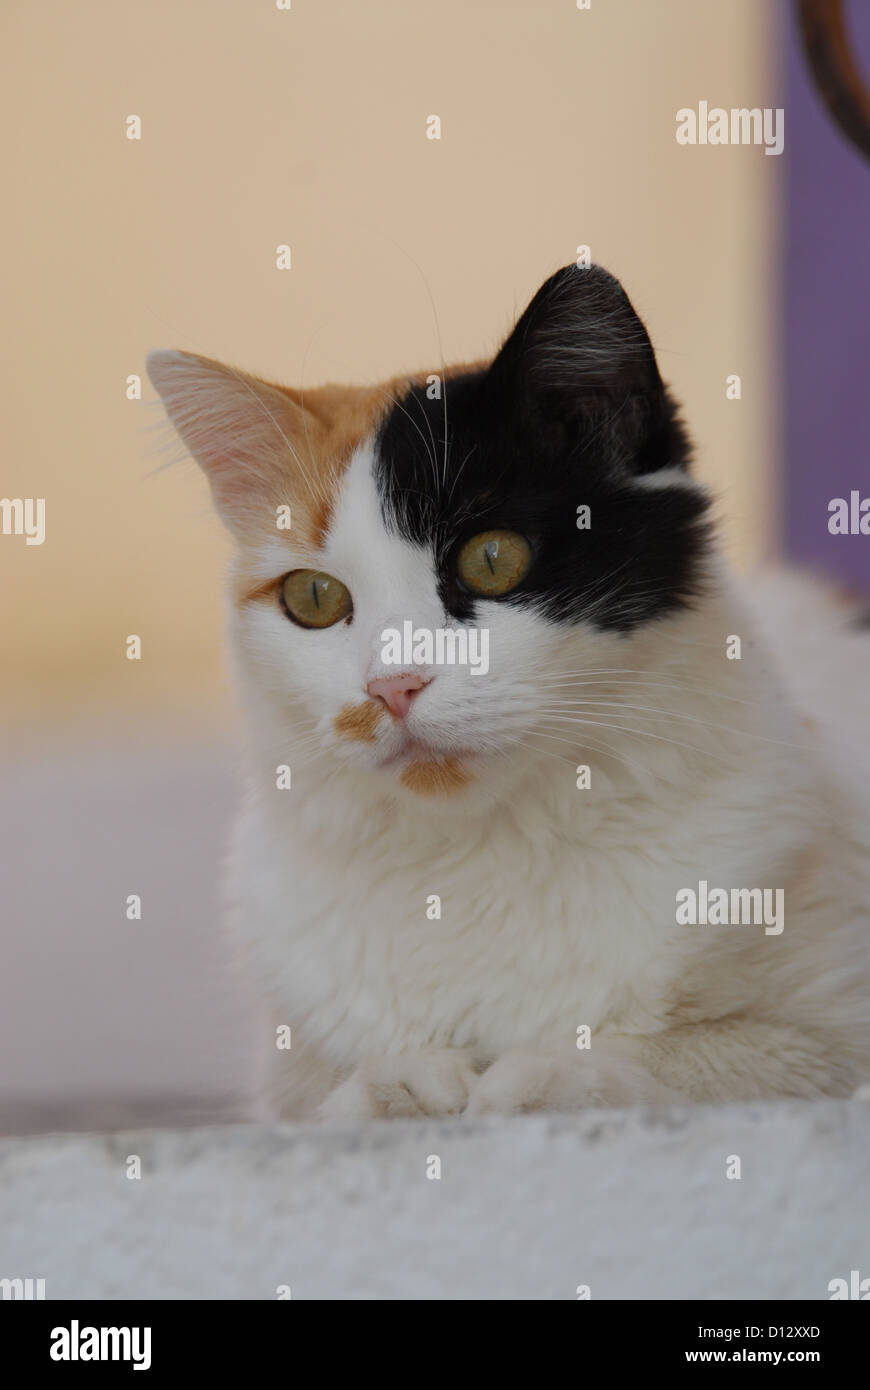 Hauskatze, Schildpatt mit Weiss, Portraet, Kykladen, Griechenland, cat, Tortie and White, portrait, Cyclades, Greece, Stock Photo